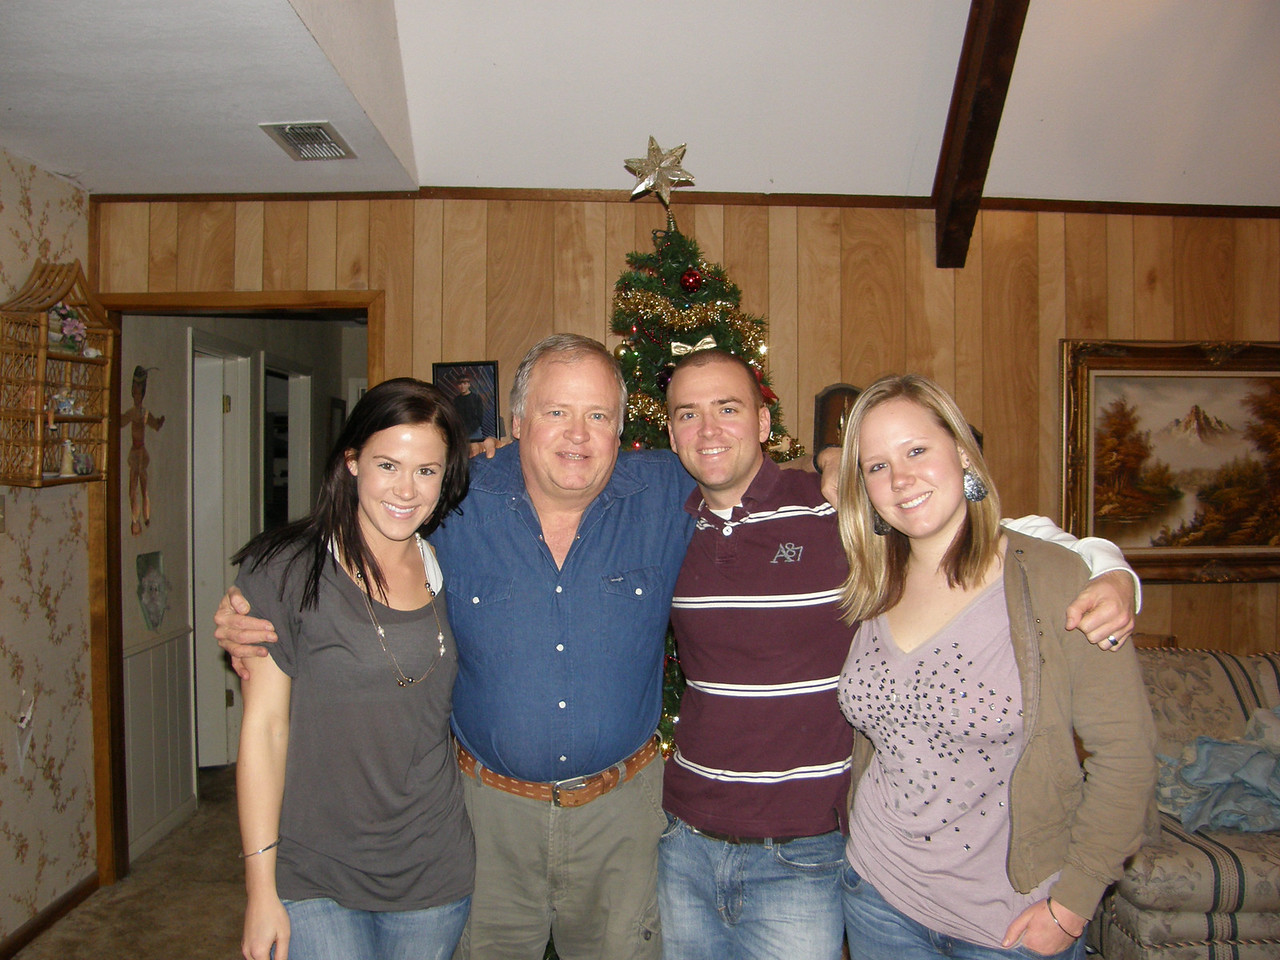 Sarah, Daddy, Luke, and Katie chllin in front of the Christmas tree!